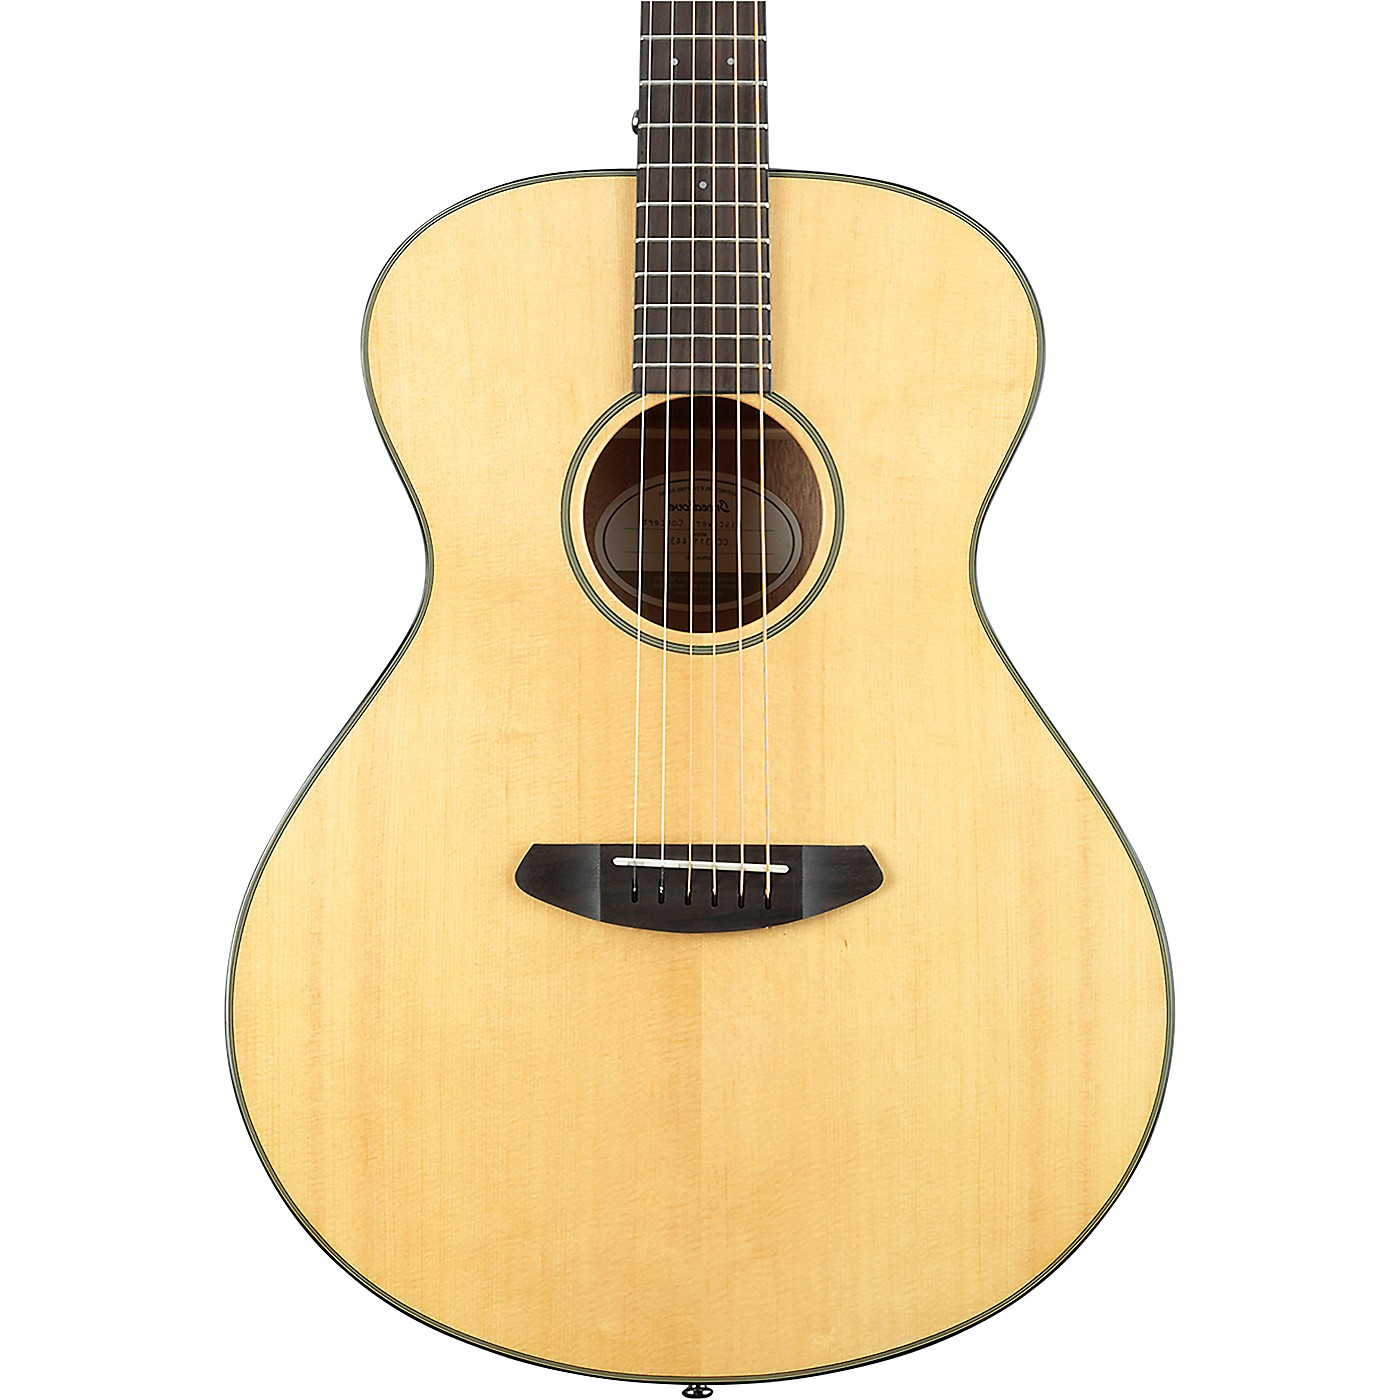 Breedlove Discovery Concert Sitka Spruce - Mahogany Left-Handed Acoustic Guitar thumbnail